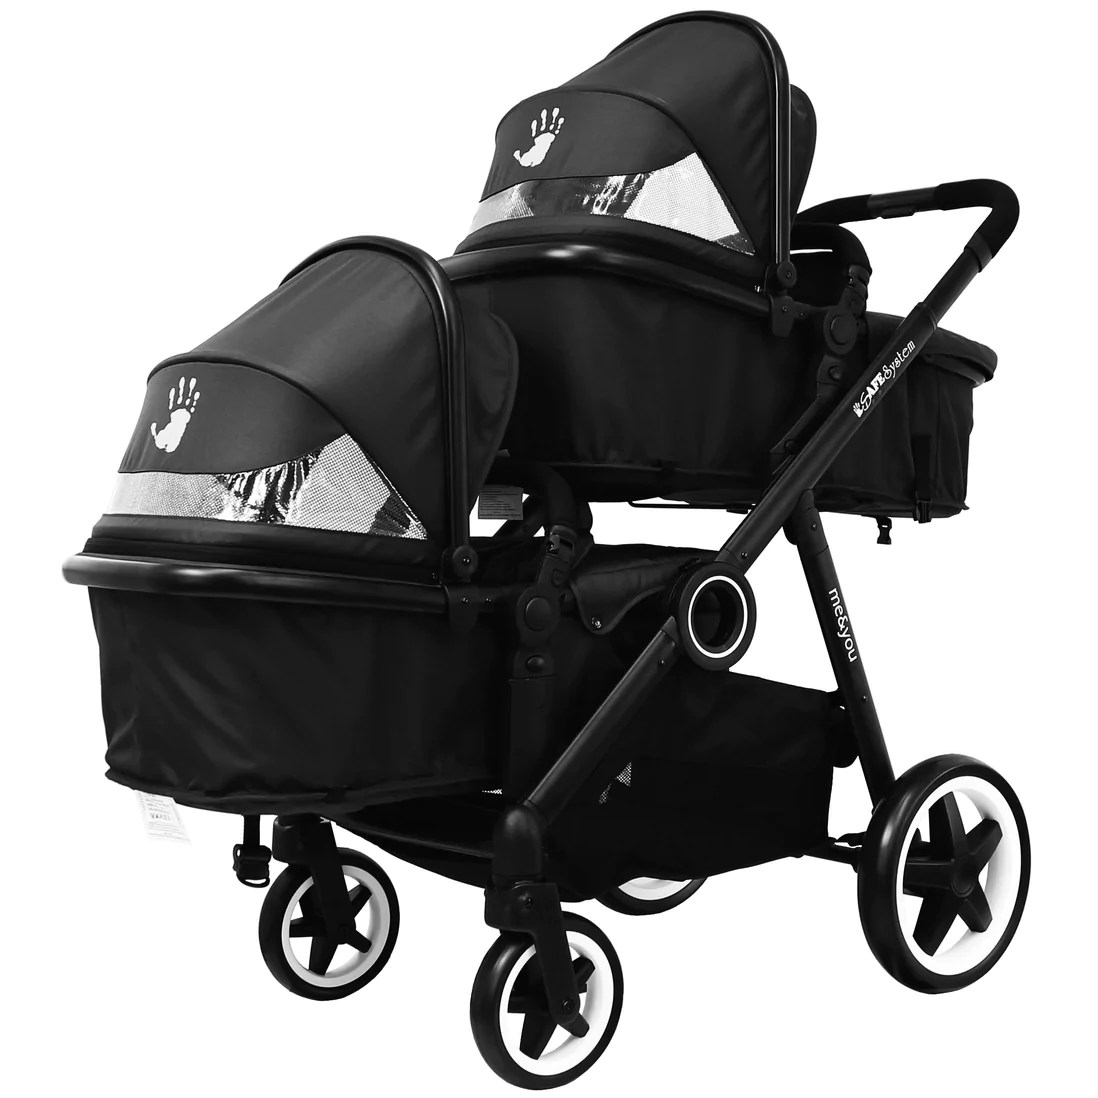 Pram Extra Seat Sale Now On Save Up To 50 Luxury Baby Prducts By Isafe